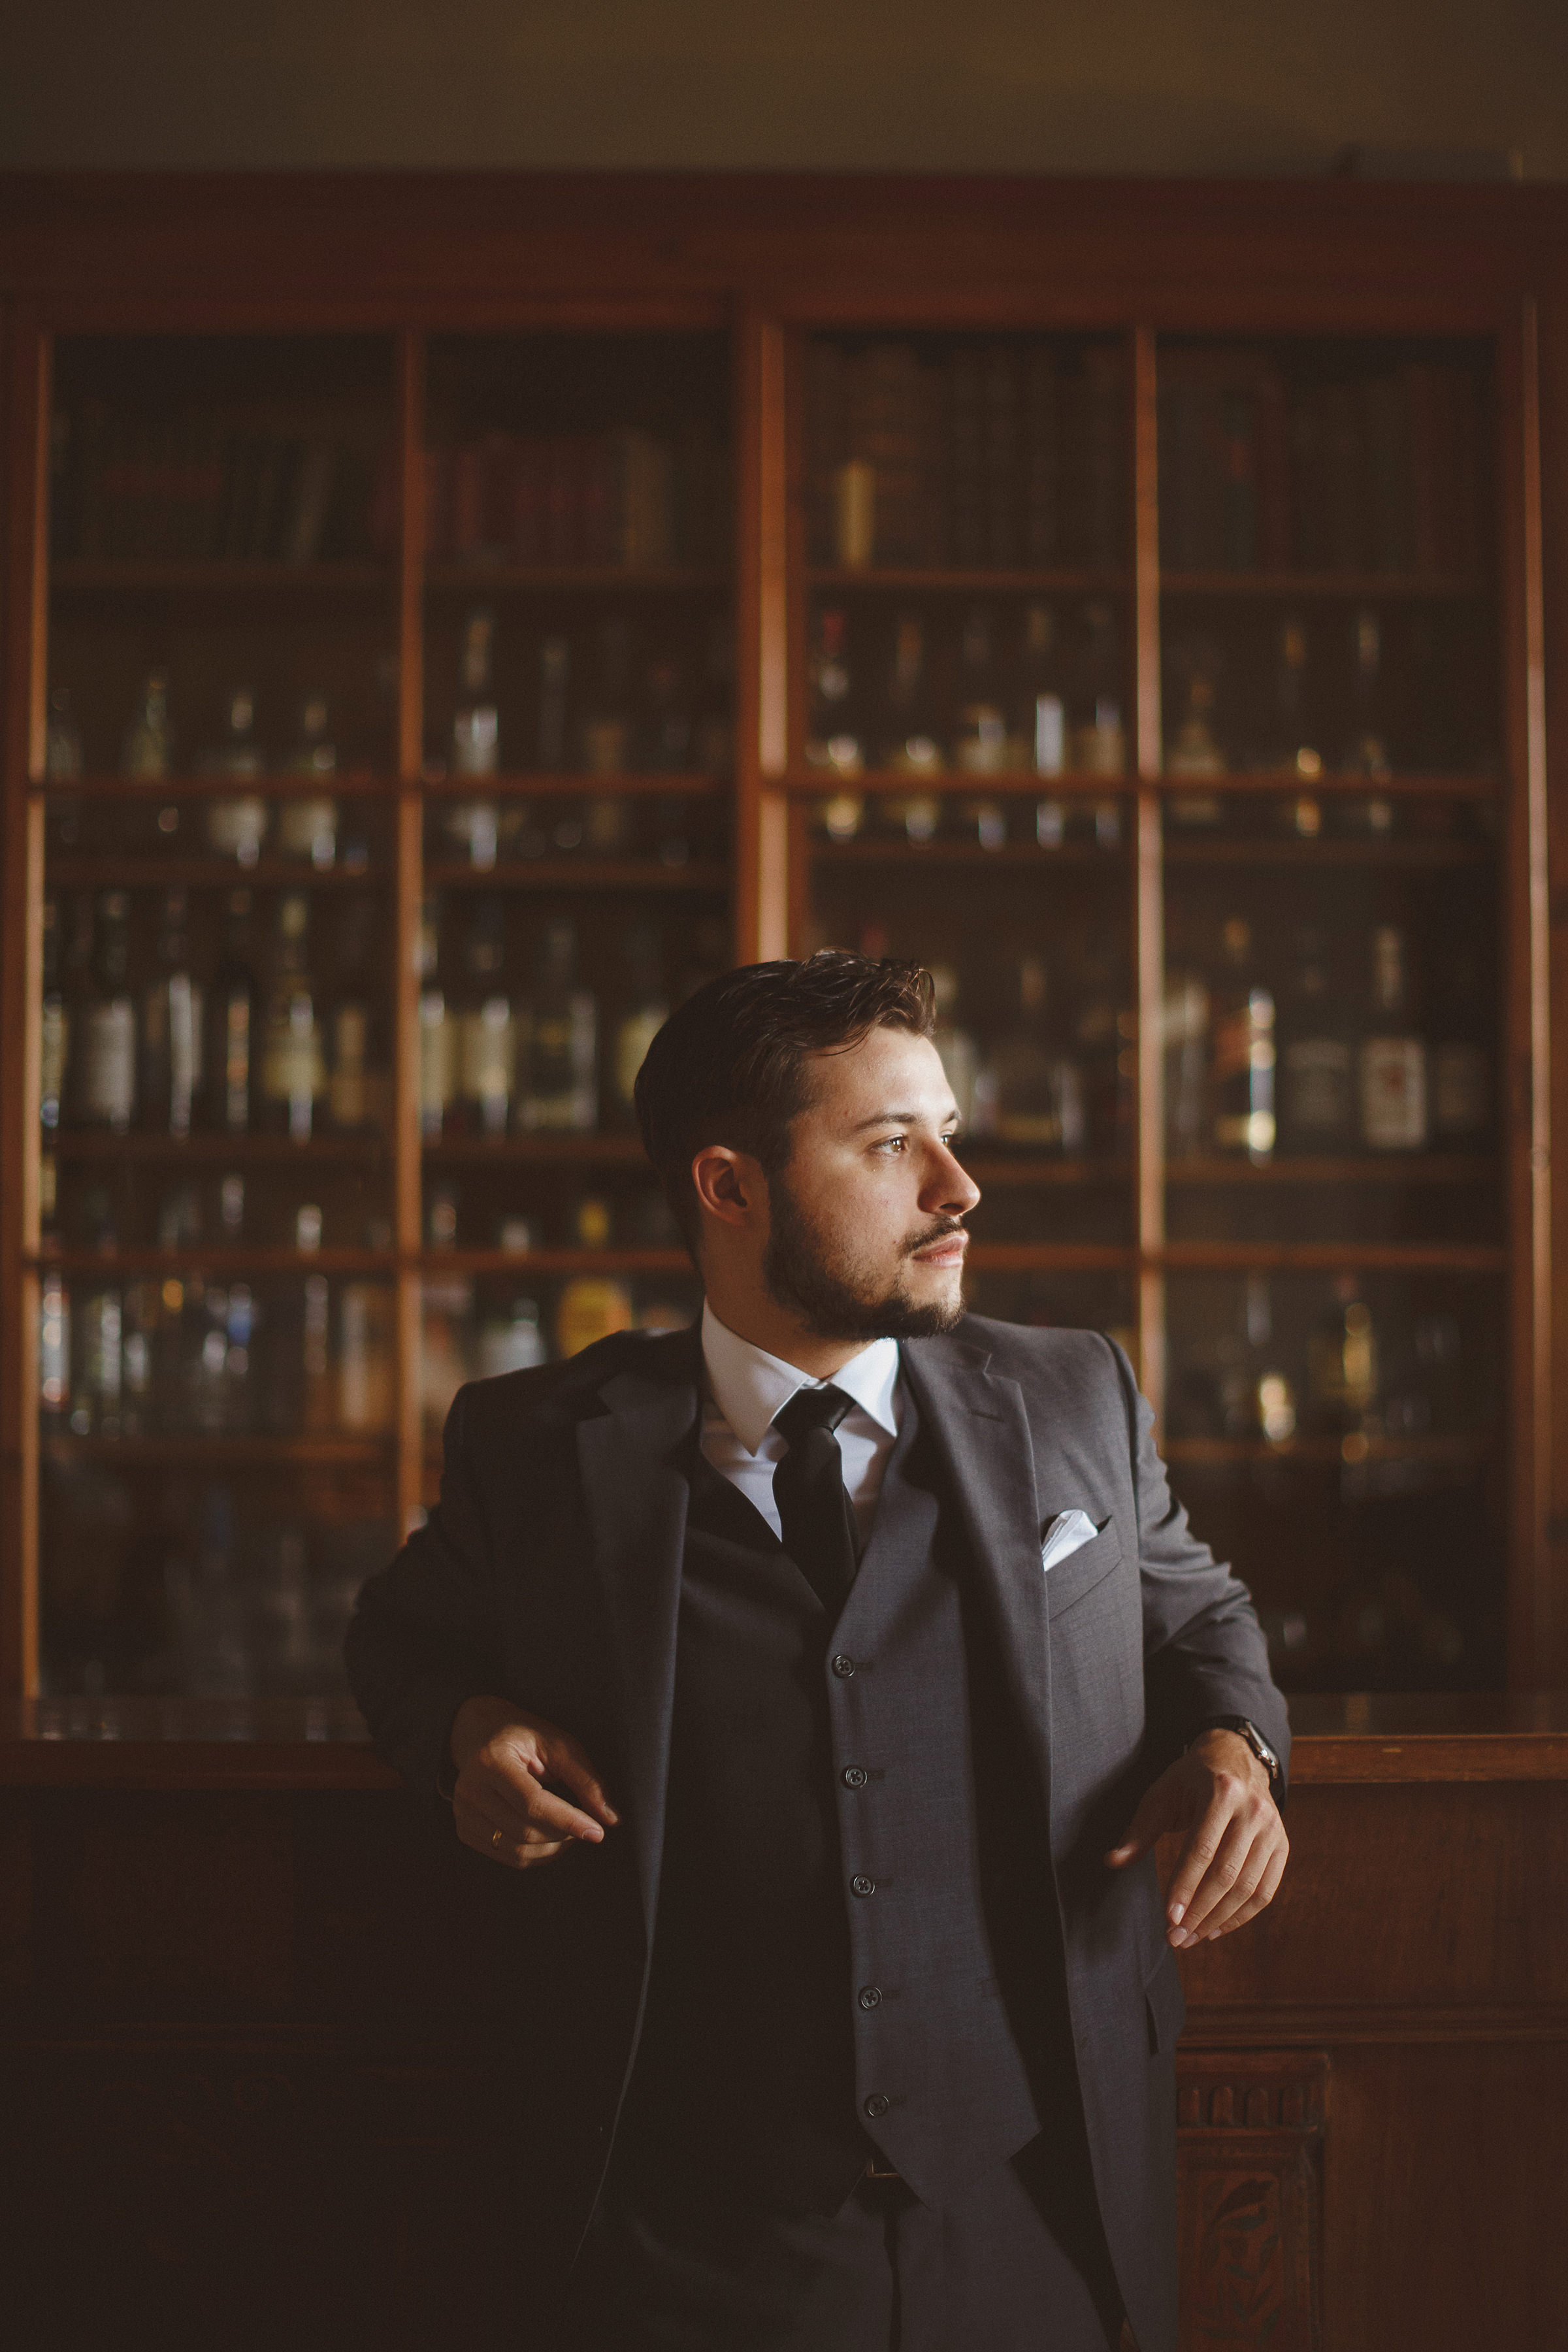 Groom portrait against back bar - photo by Ed Peers Photography